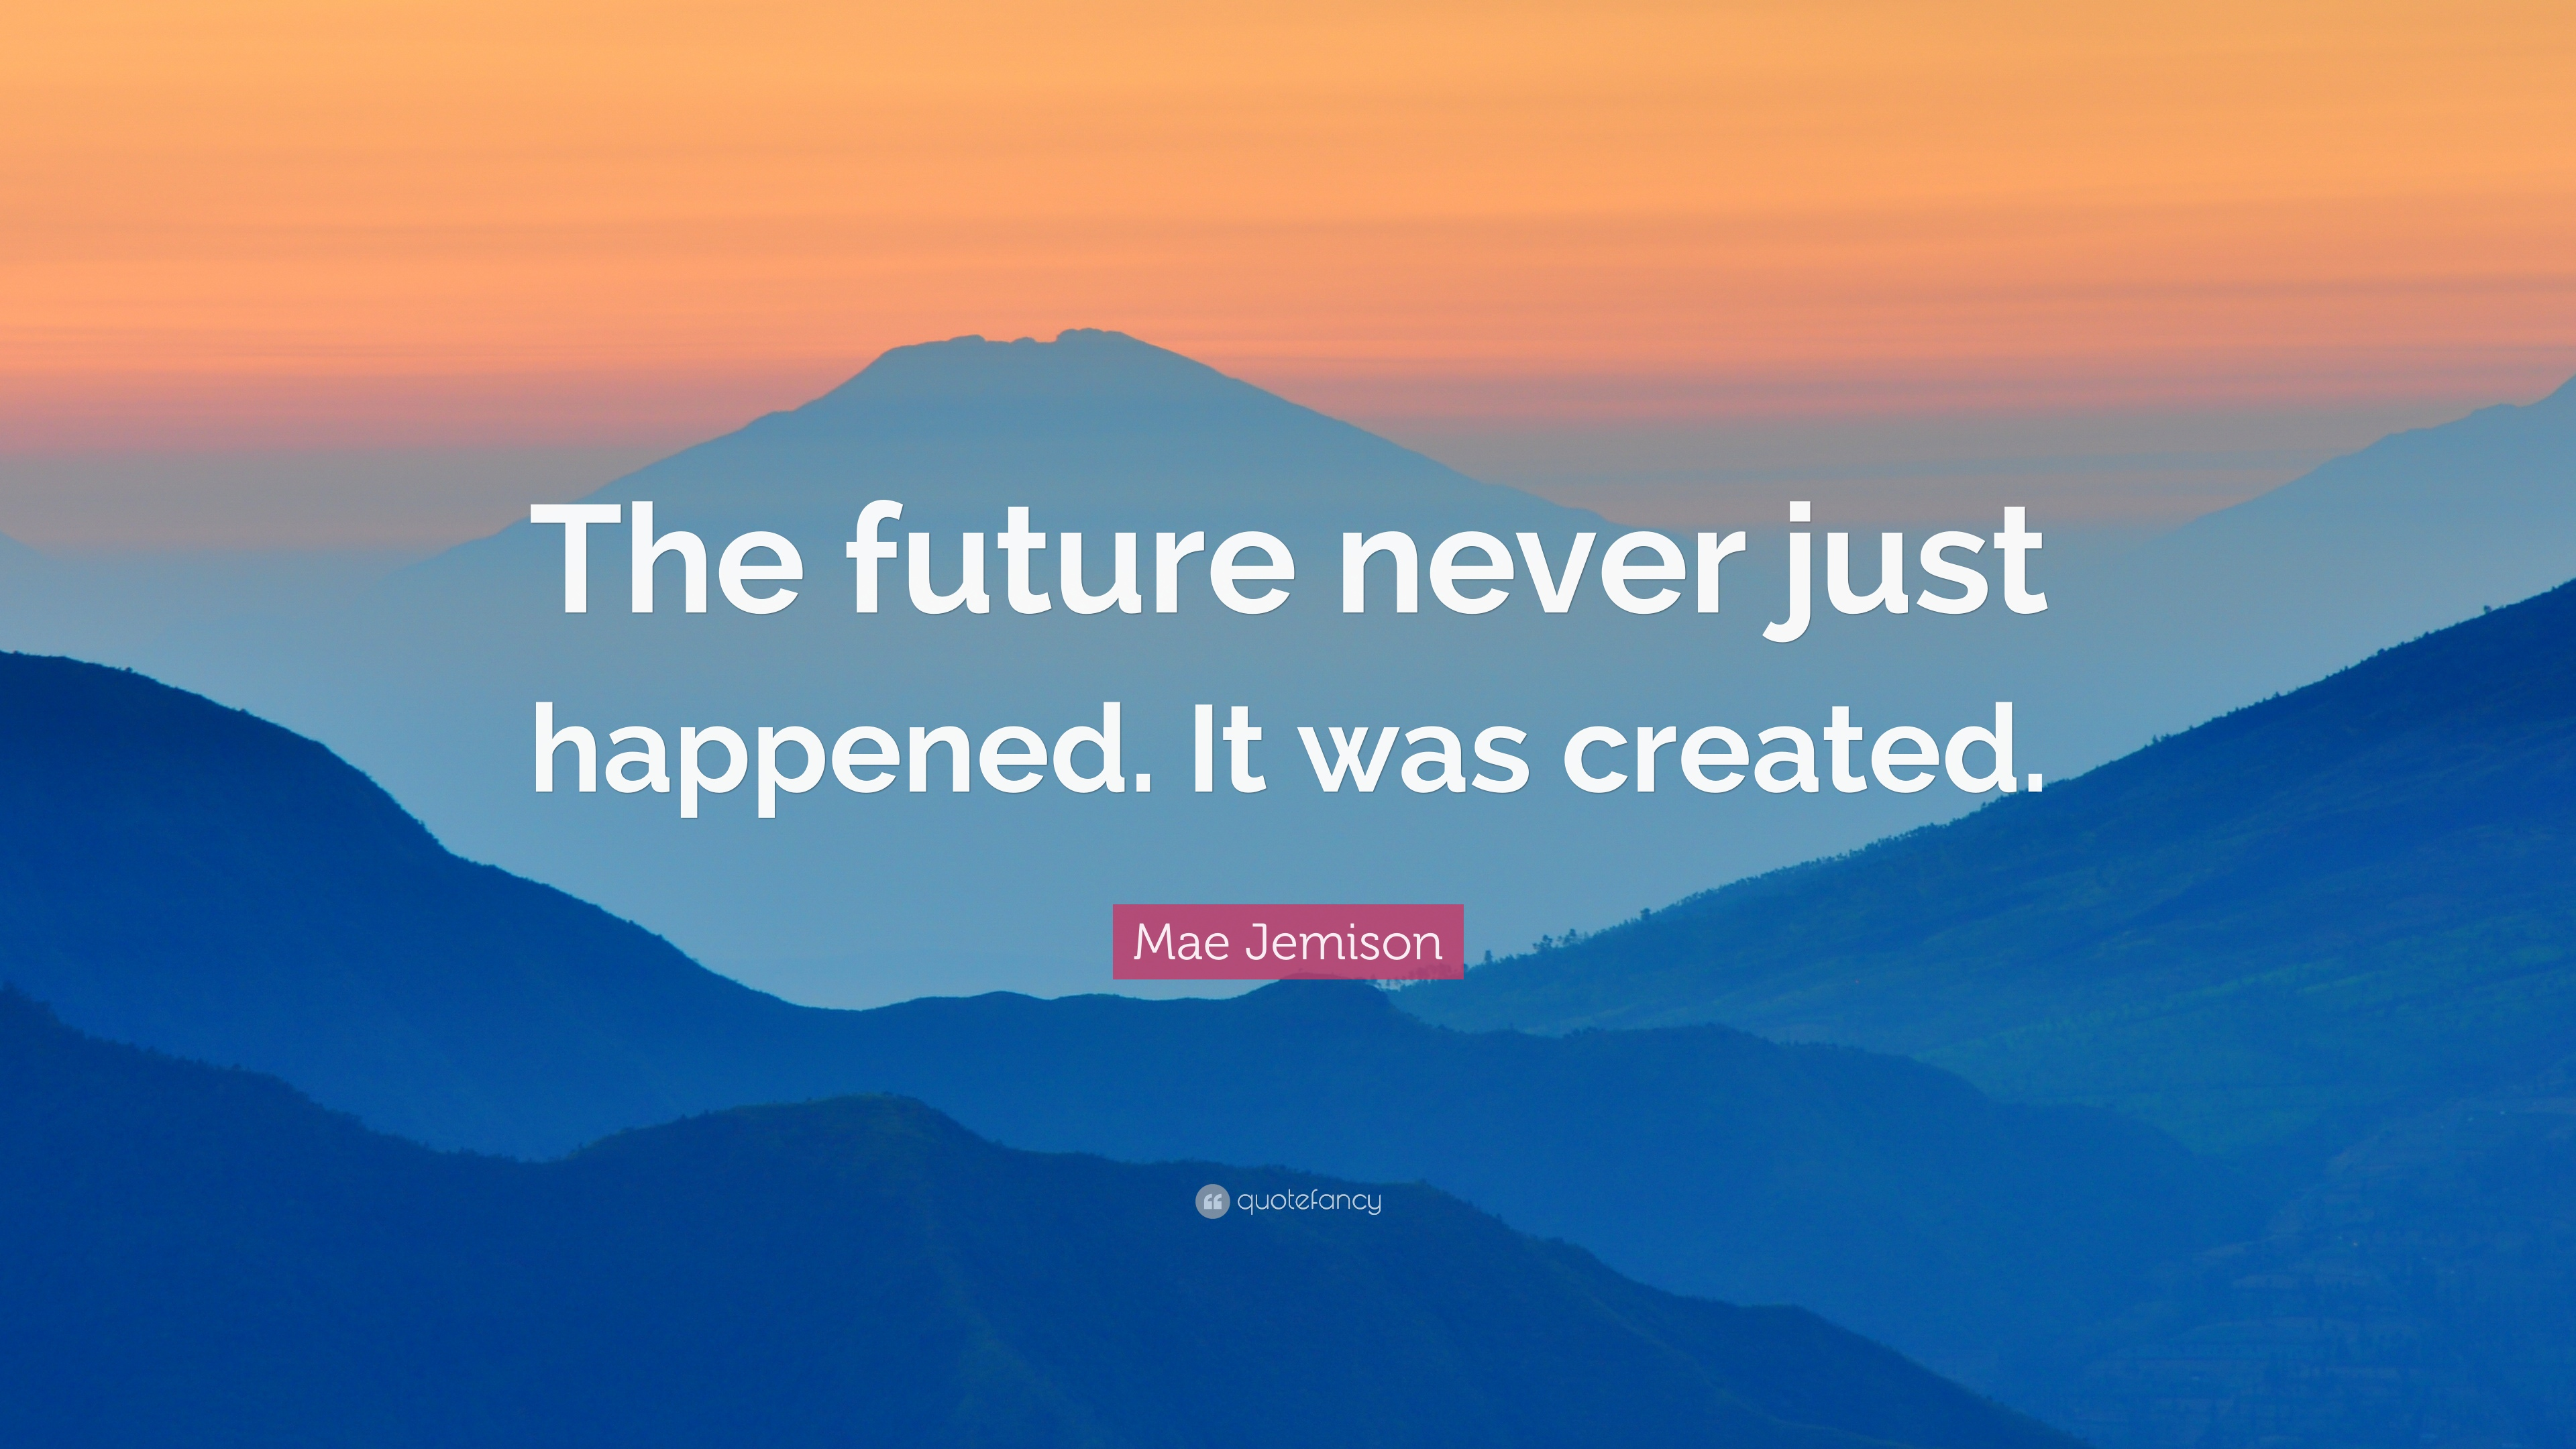 """Mae Jemison Quotes Mae Jemison Quote: """"The future never just happened. It was created  Mae Jemison Quotes"""